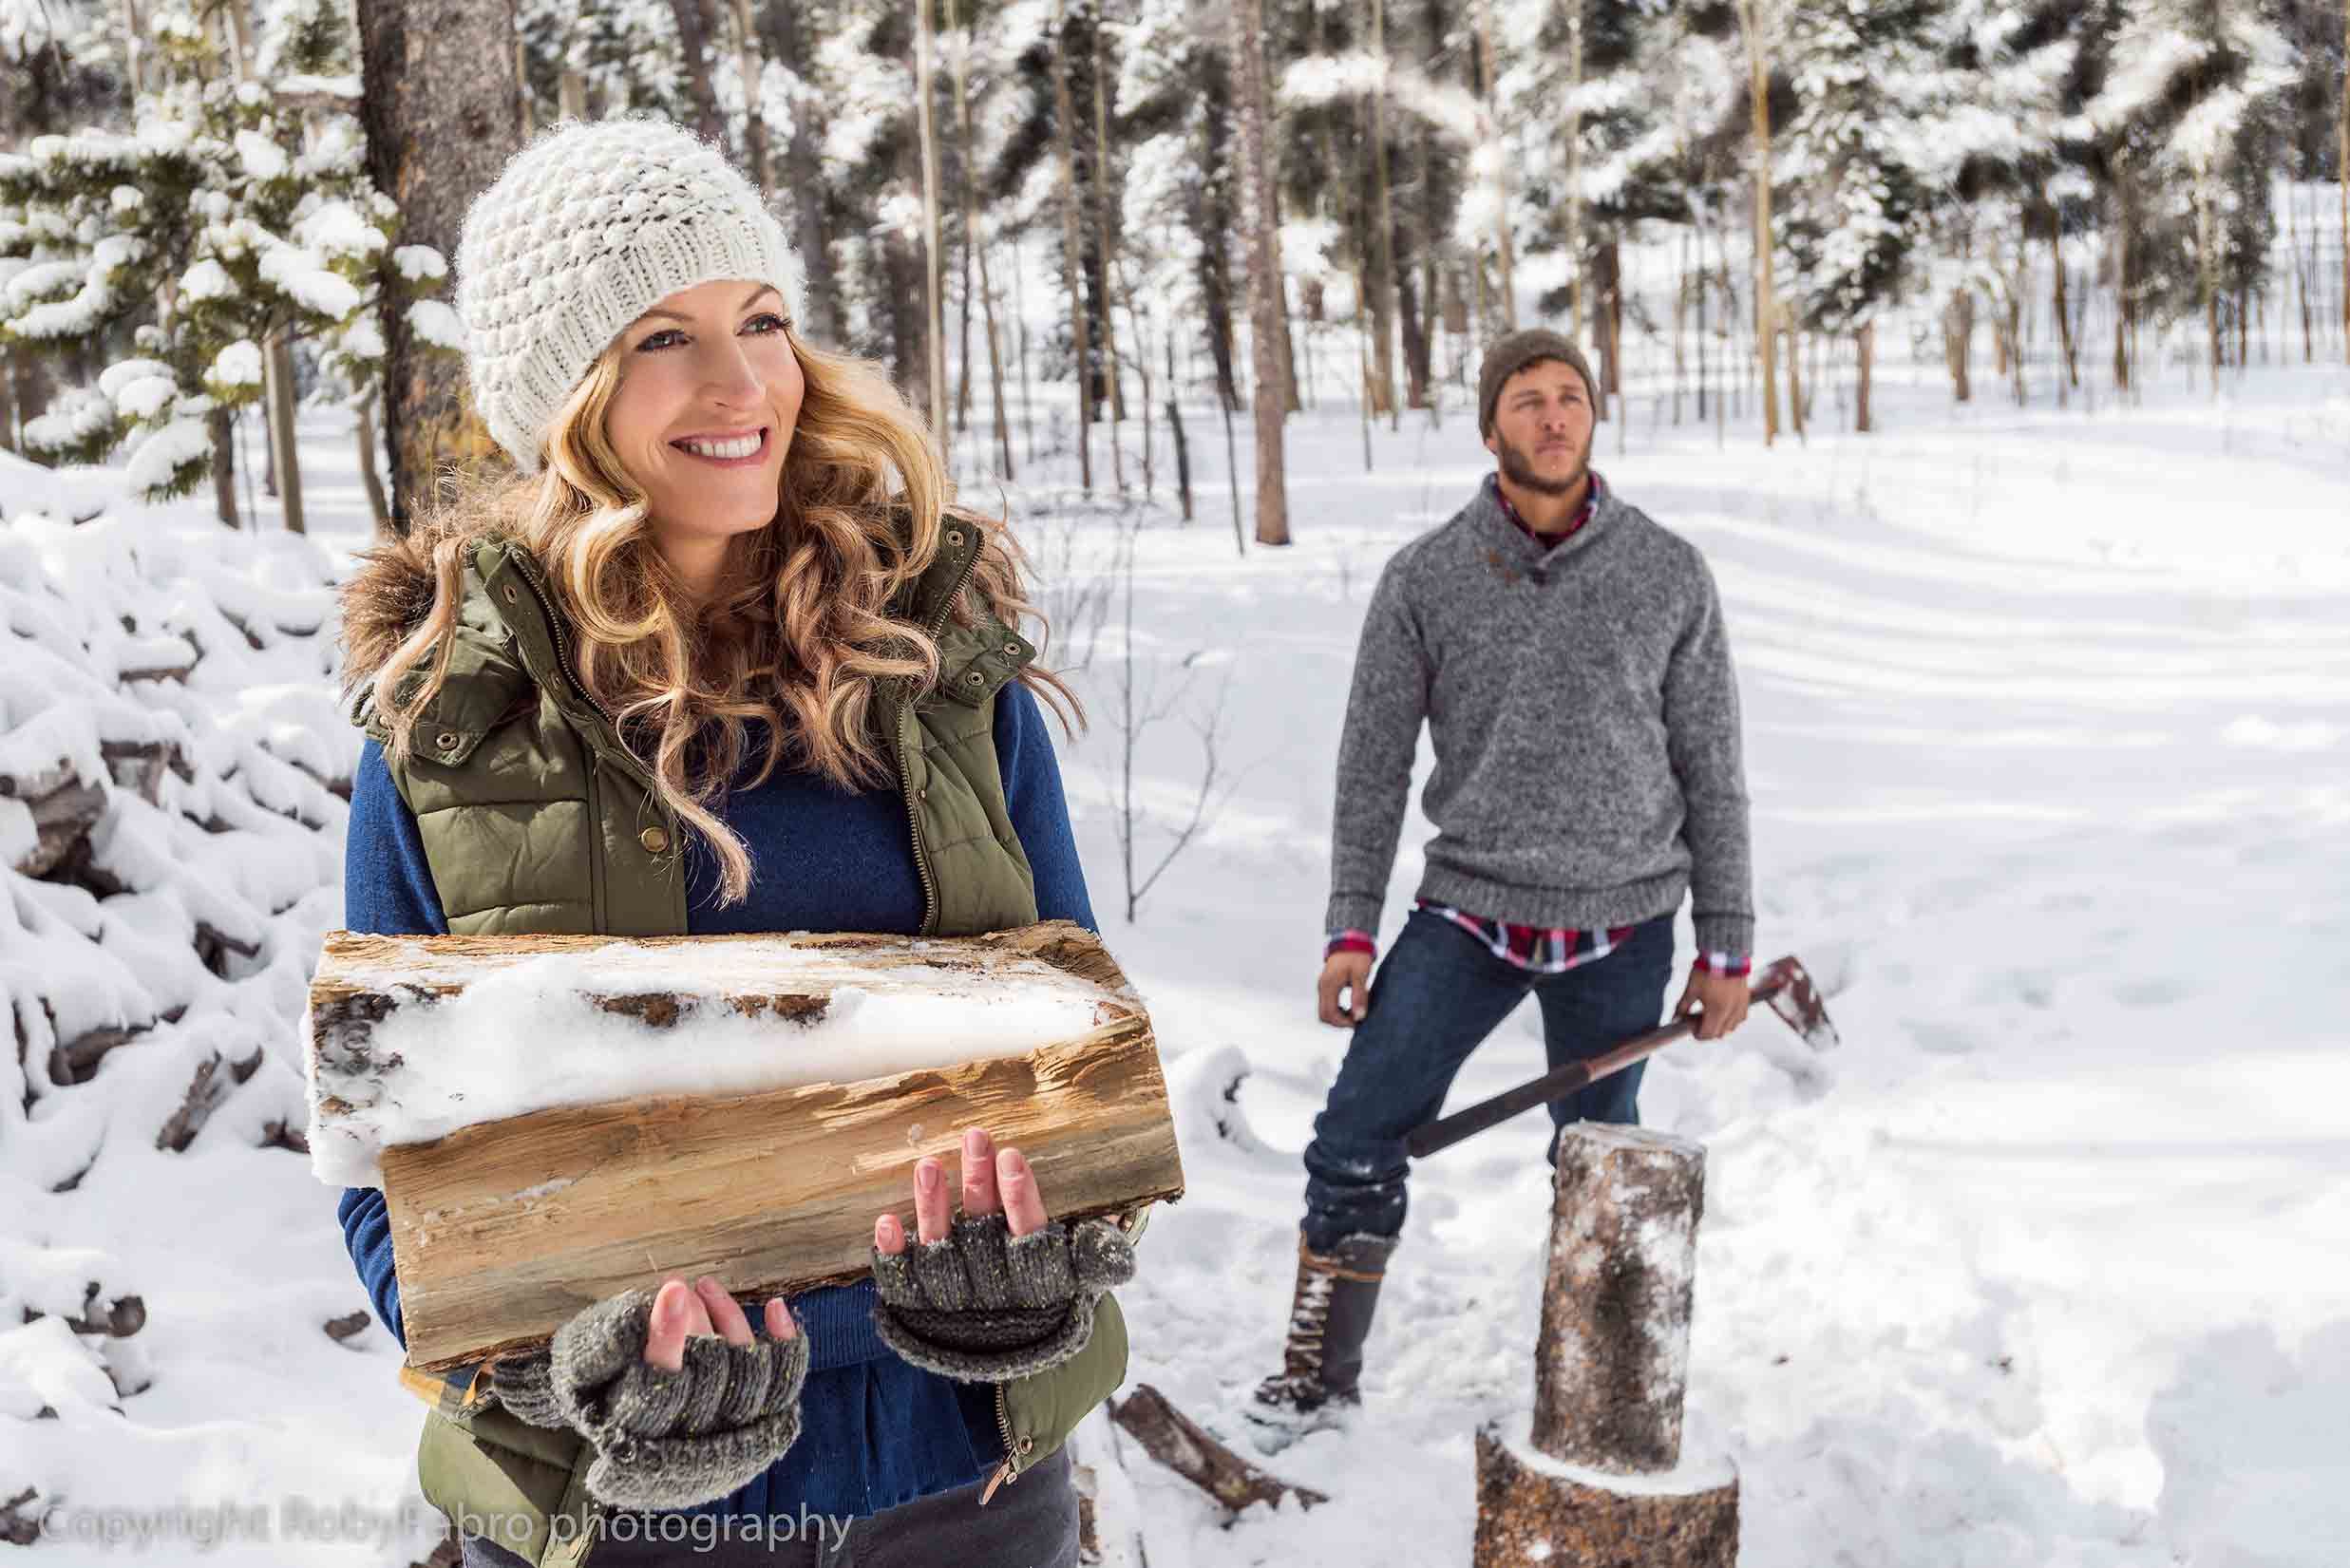 Lifestyle photography, chopping wood. Breckenridge, Colorado